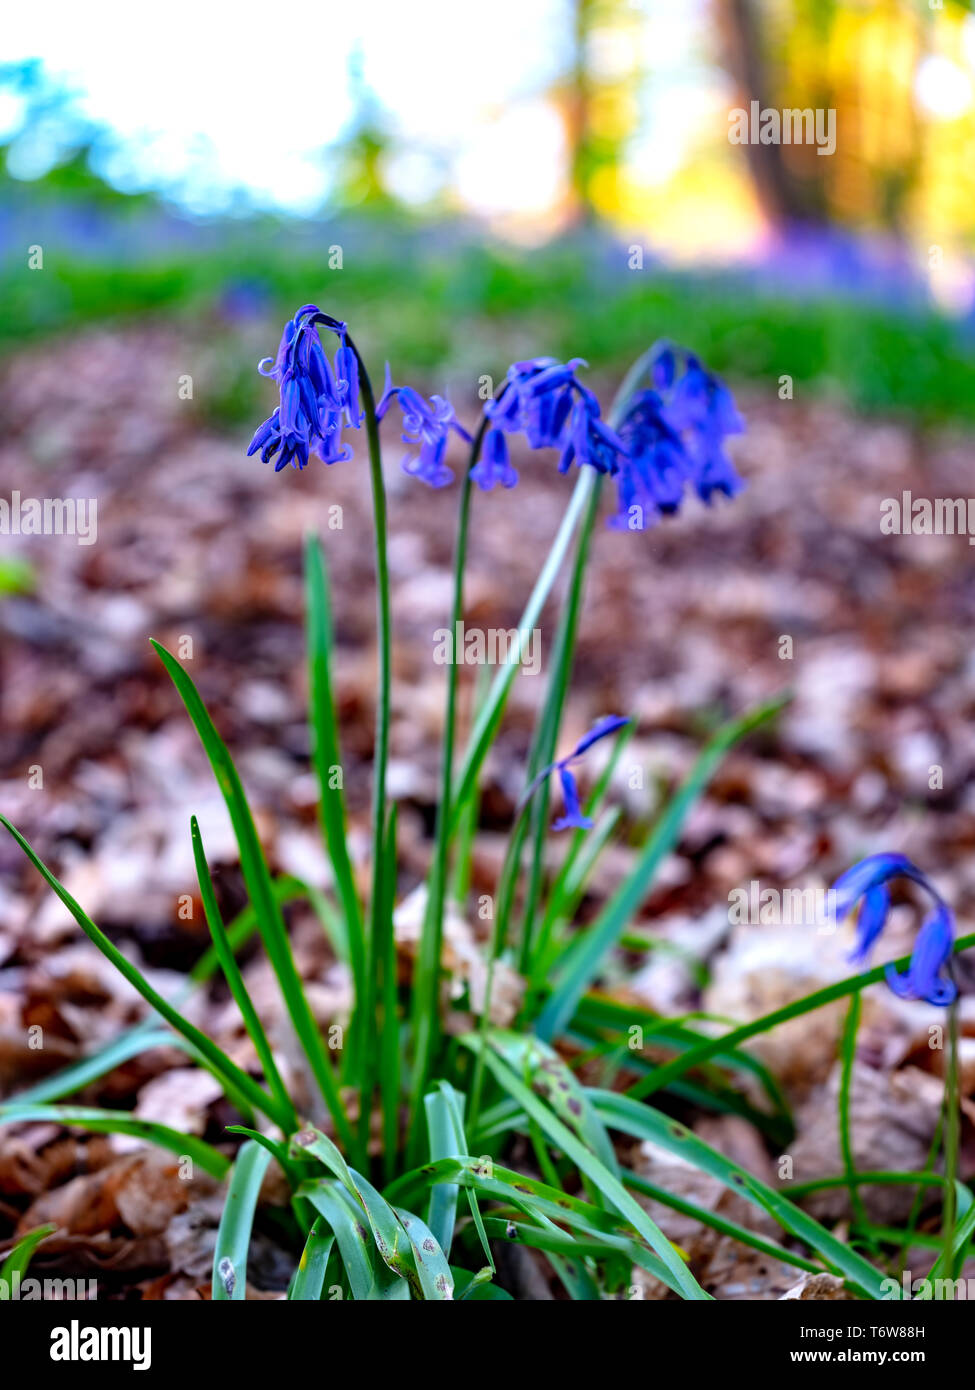 Single Bluebell plant and flowers in a woodland setting, taken with very low depth of field. - Stock Image